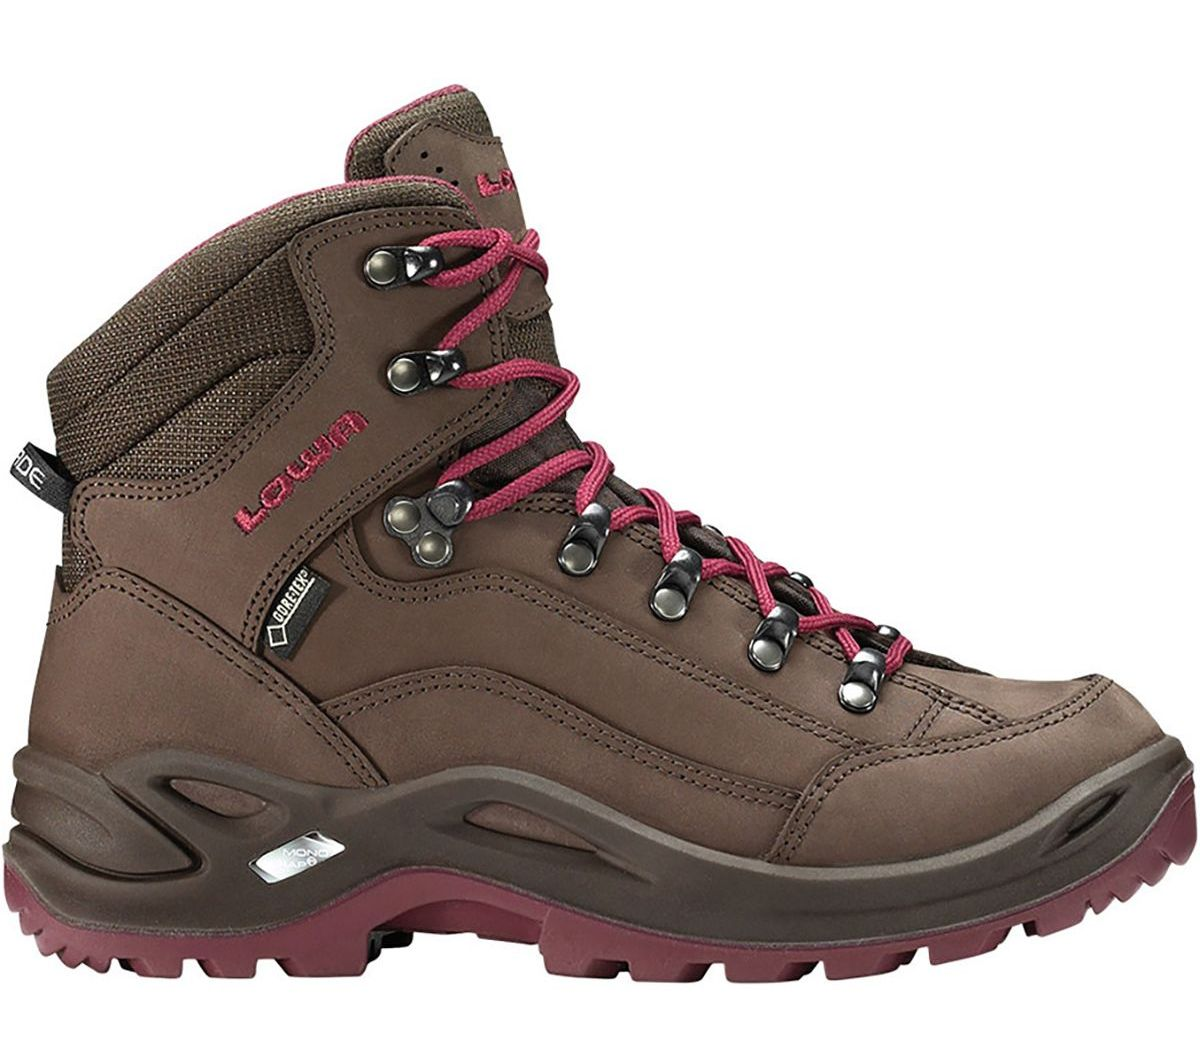 ee3bcbcc4909 Best Hiking Boots - Hiking Boot Reviews 2019